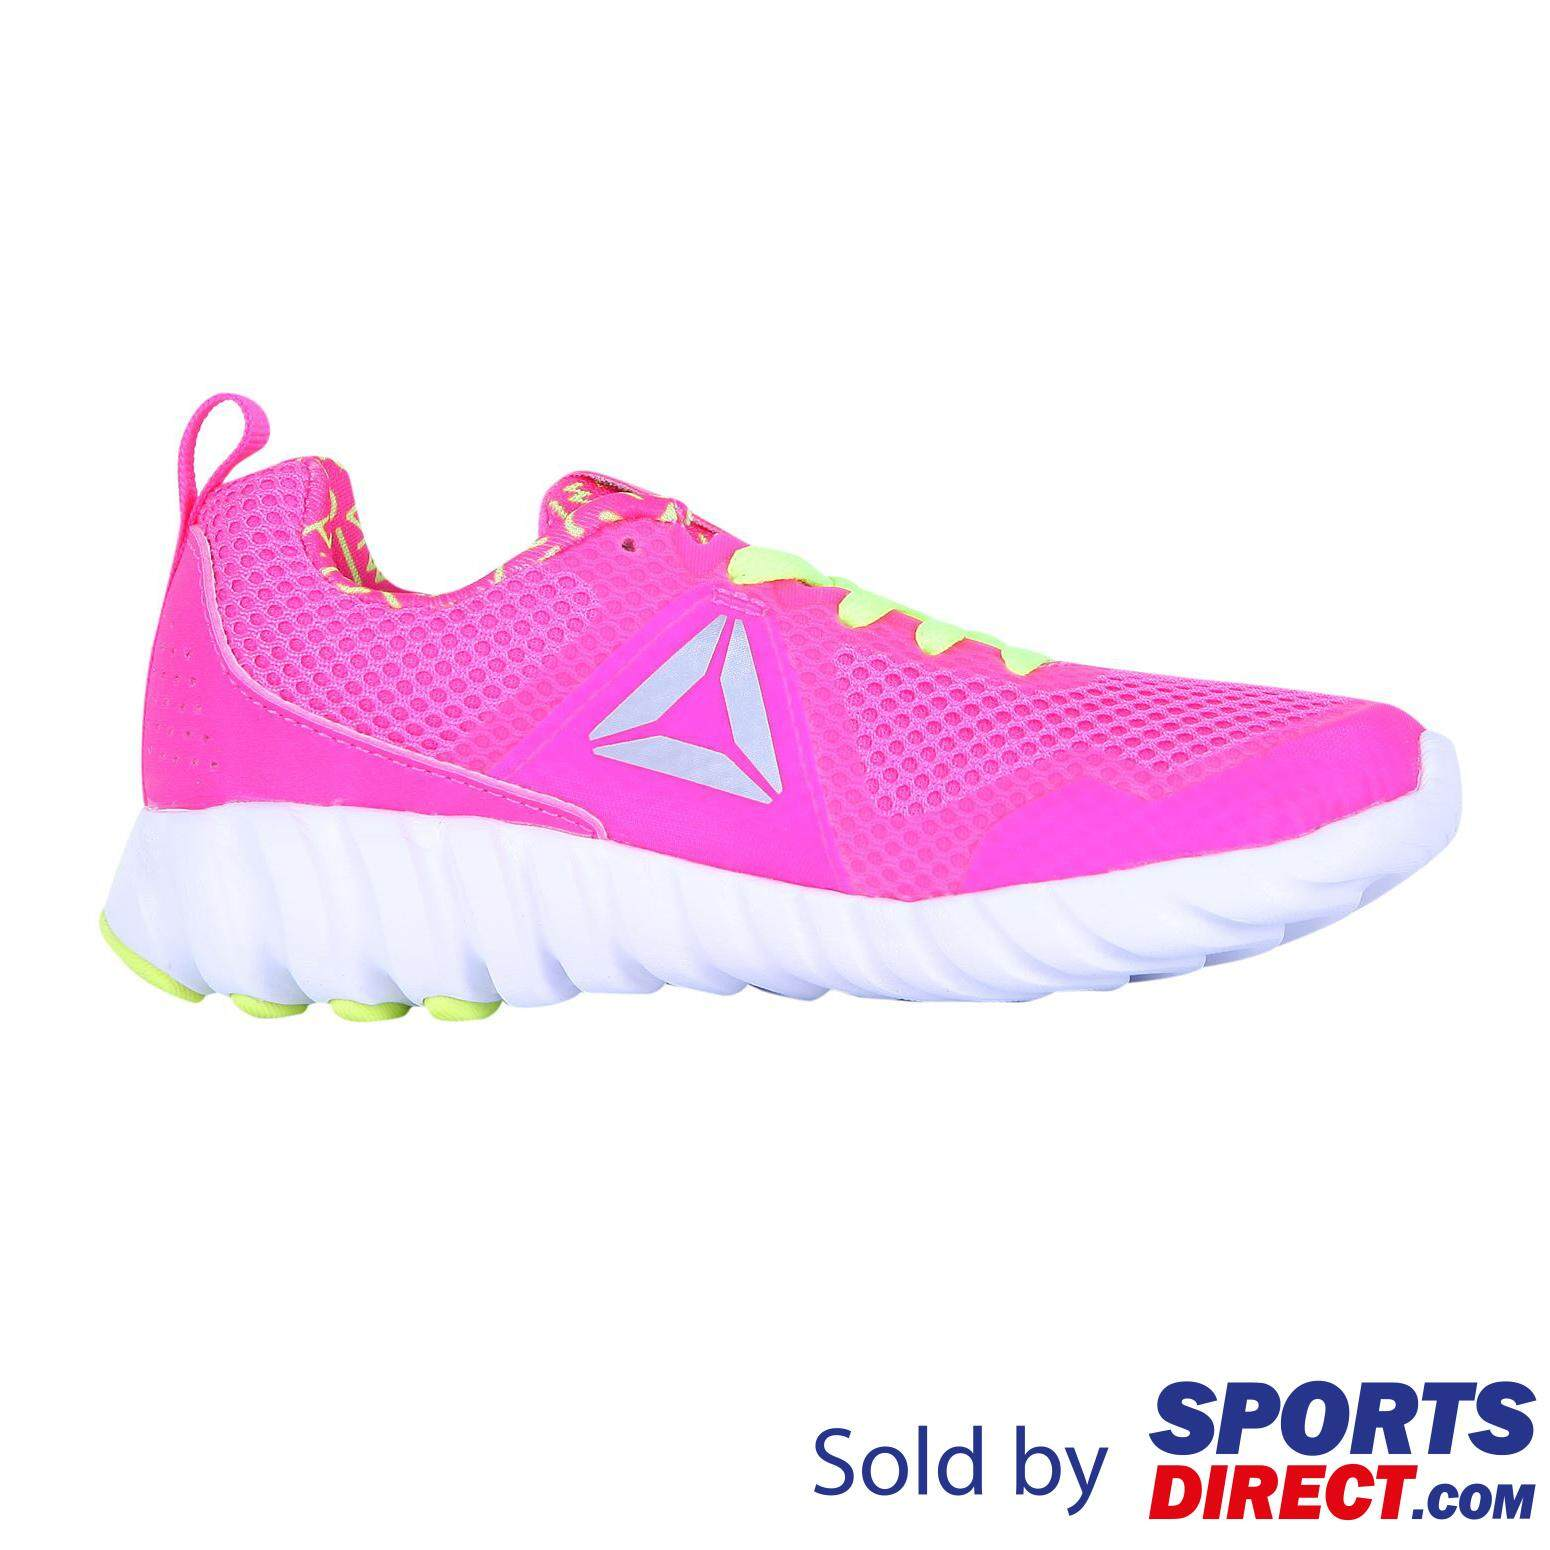 94b39170fc4 Girls  Running Shoes - Buy Girls  Running Shoes at Best Price in ...